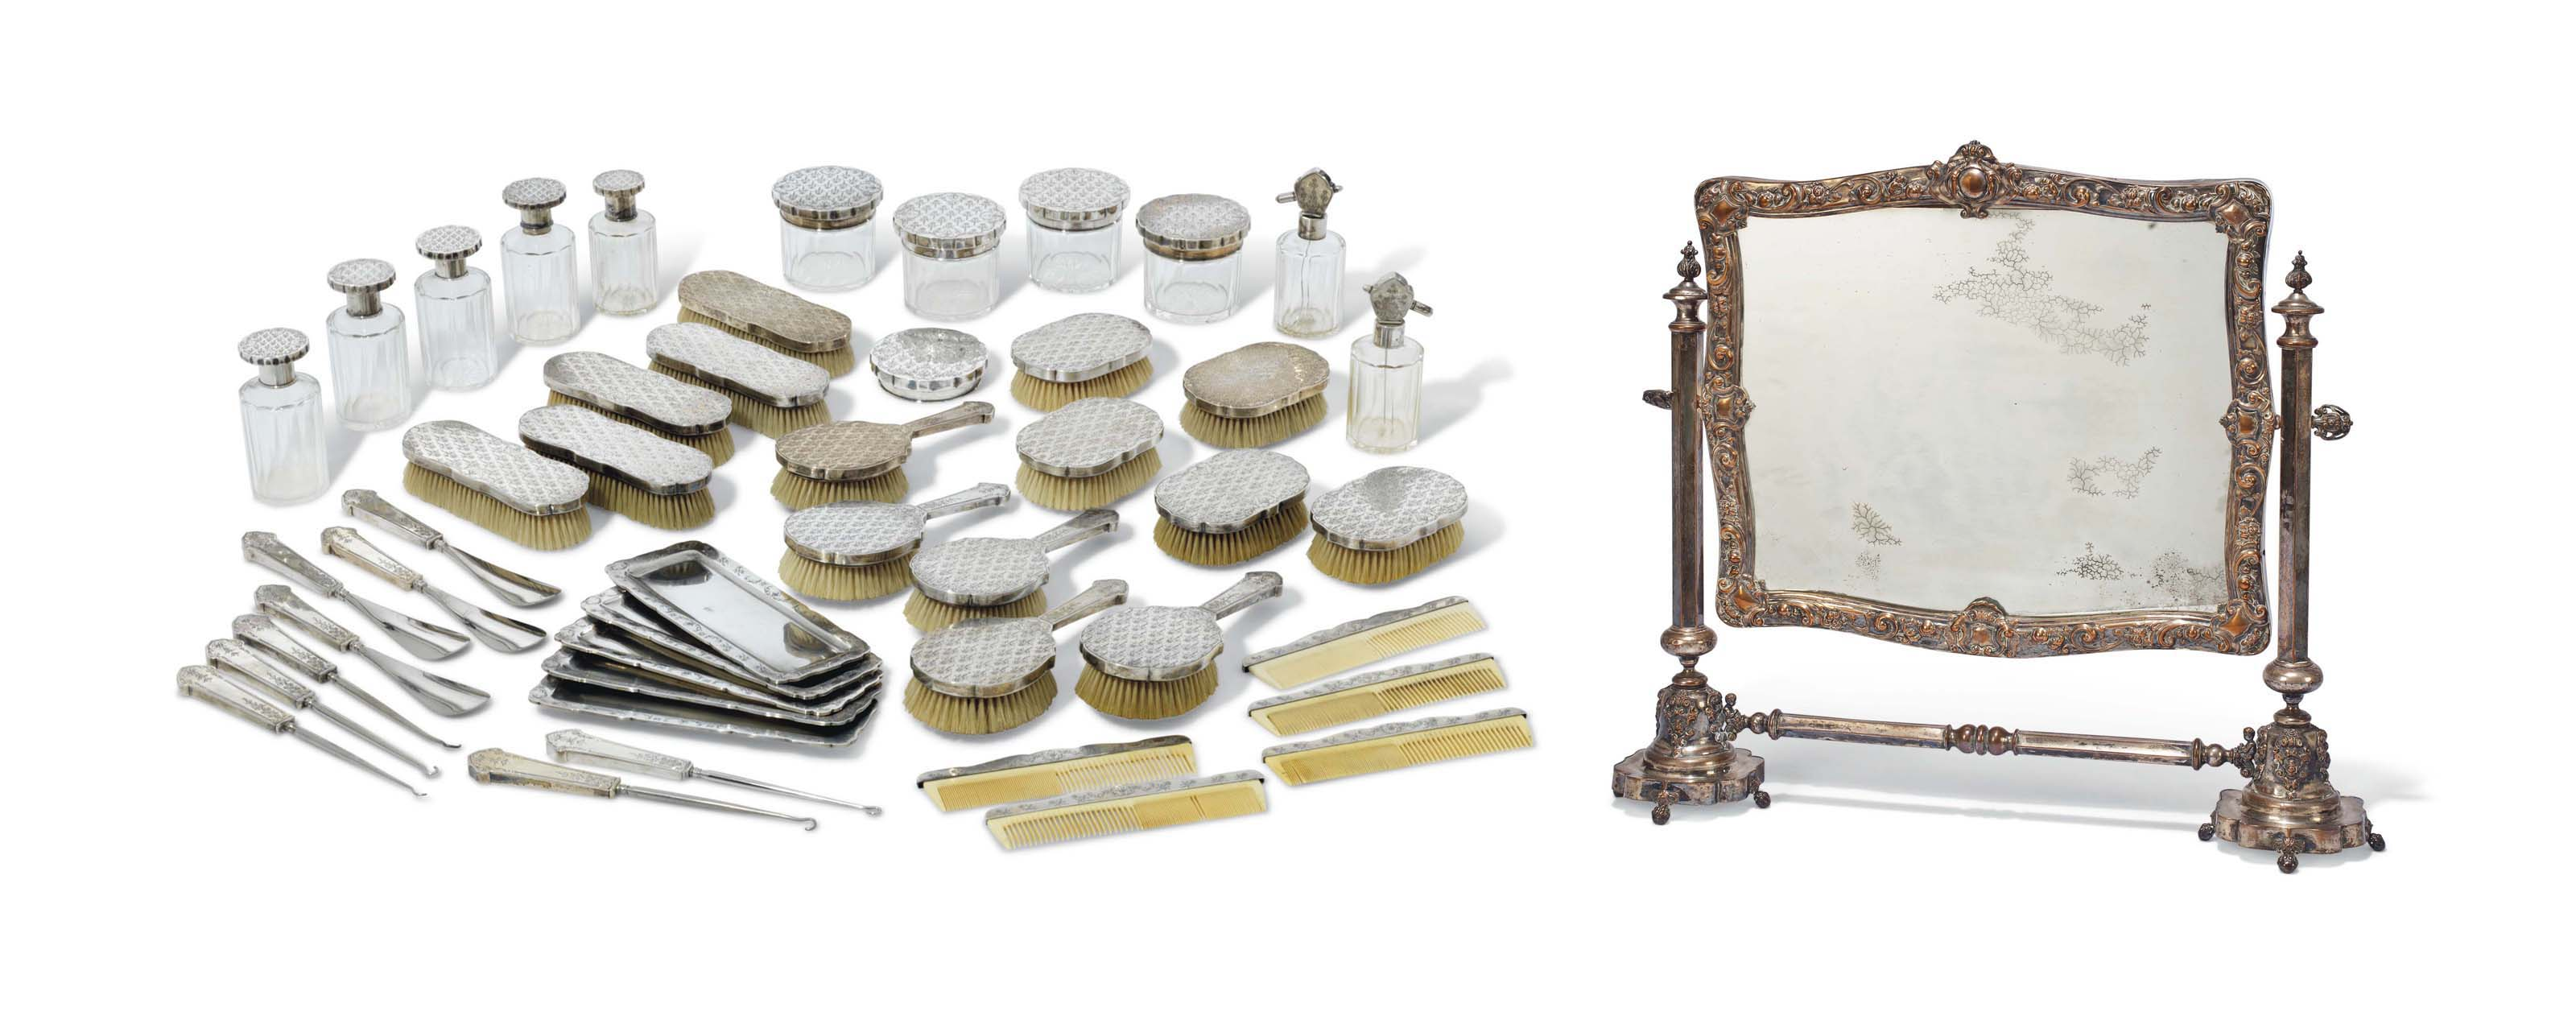 AN ITALIAN SILVER-MOUNTED DRESSING-TABLE SET